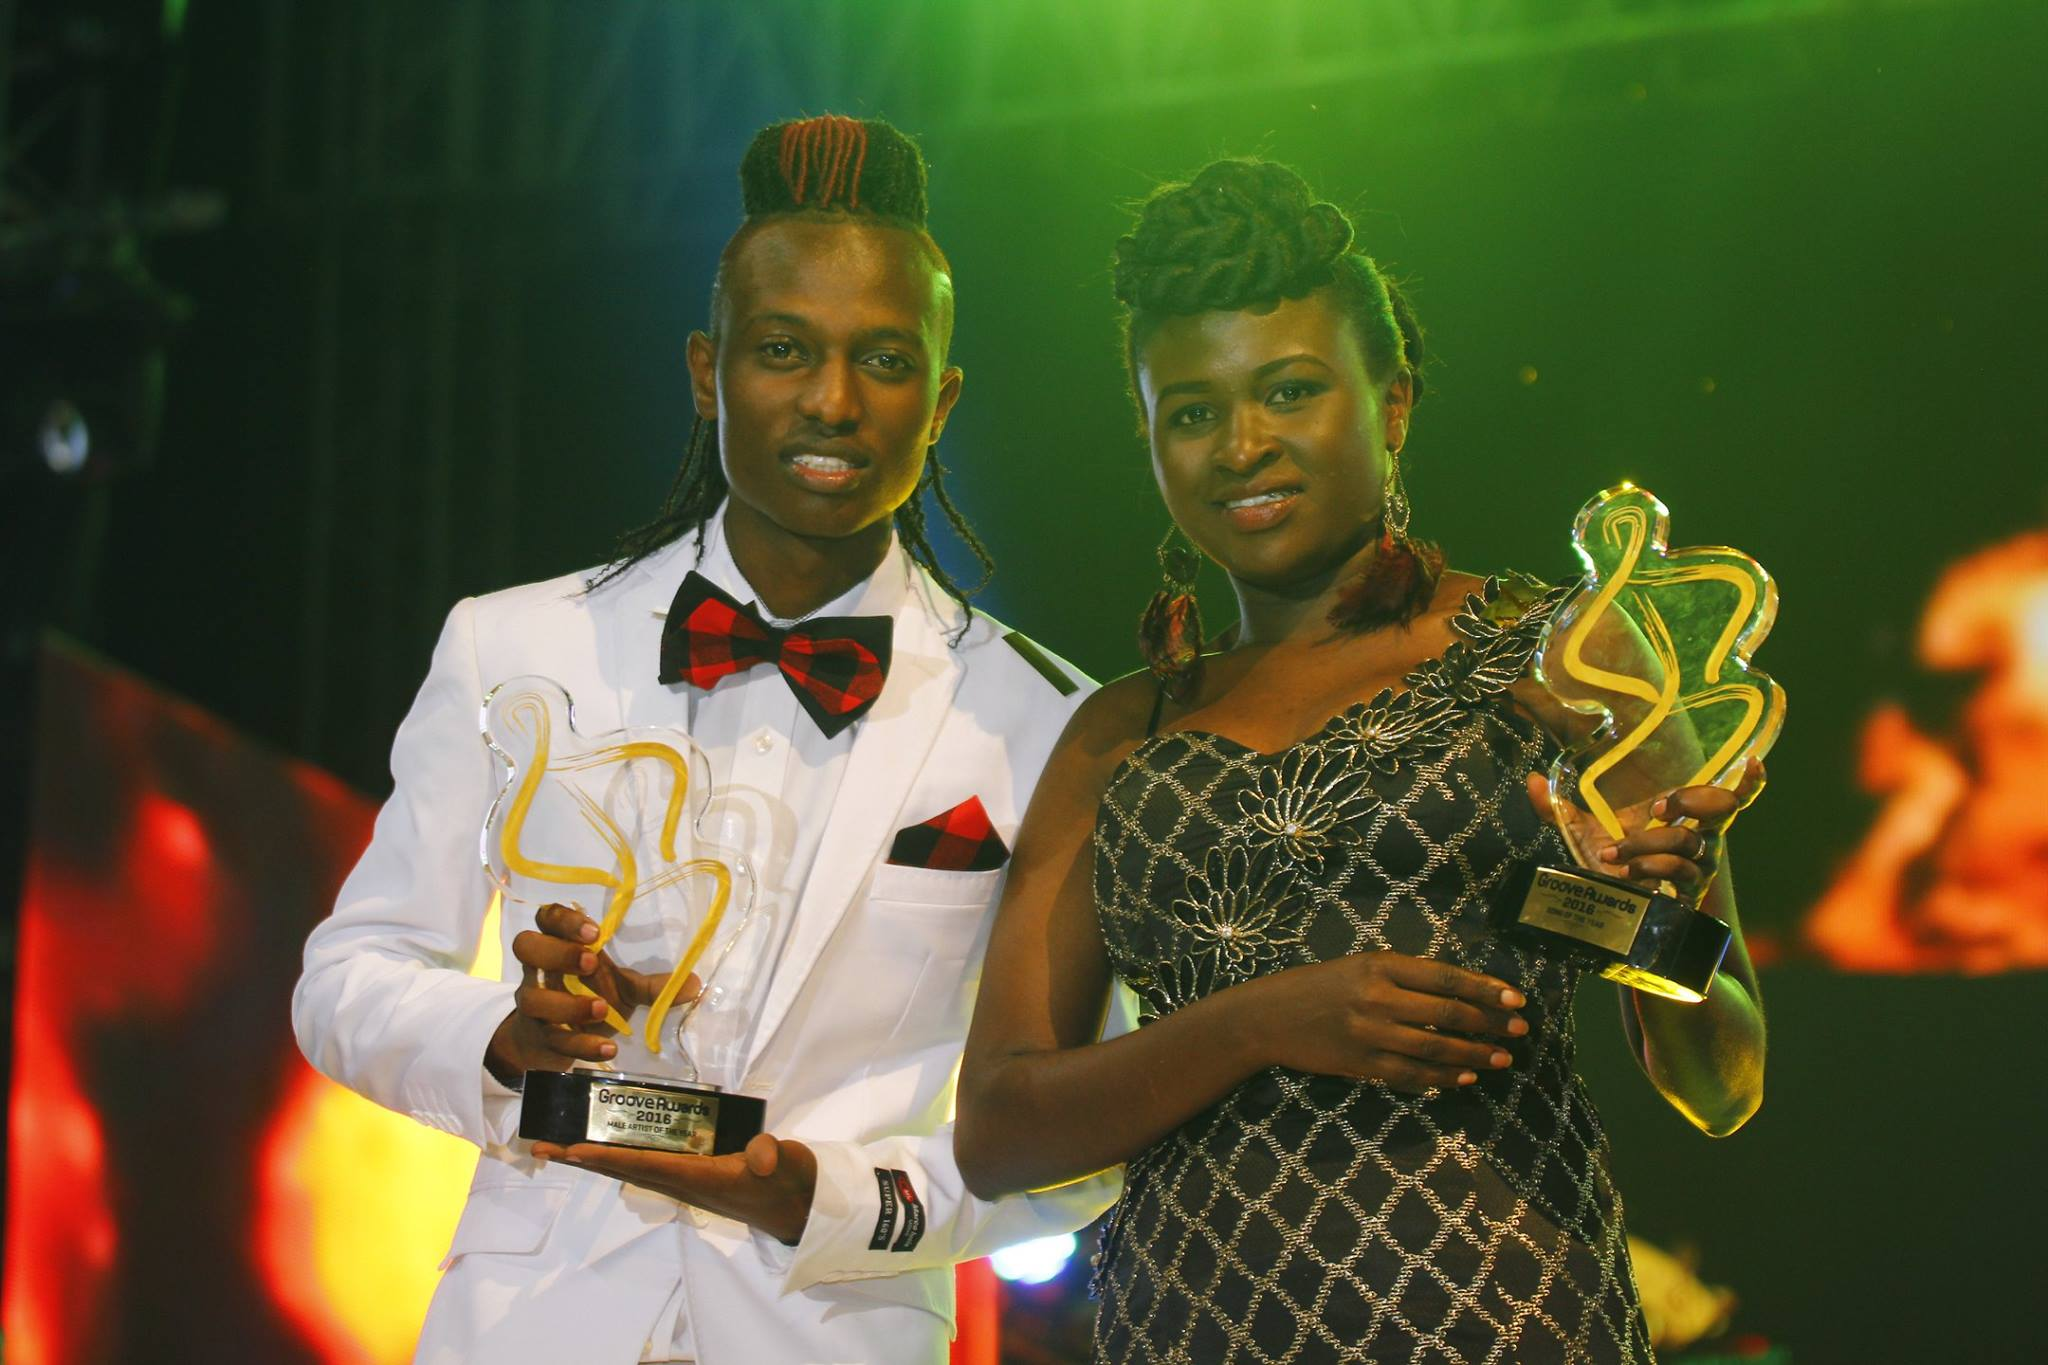 Groove Awards 2016 Winners